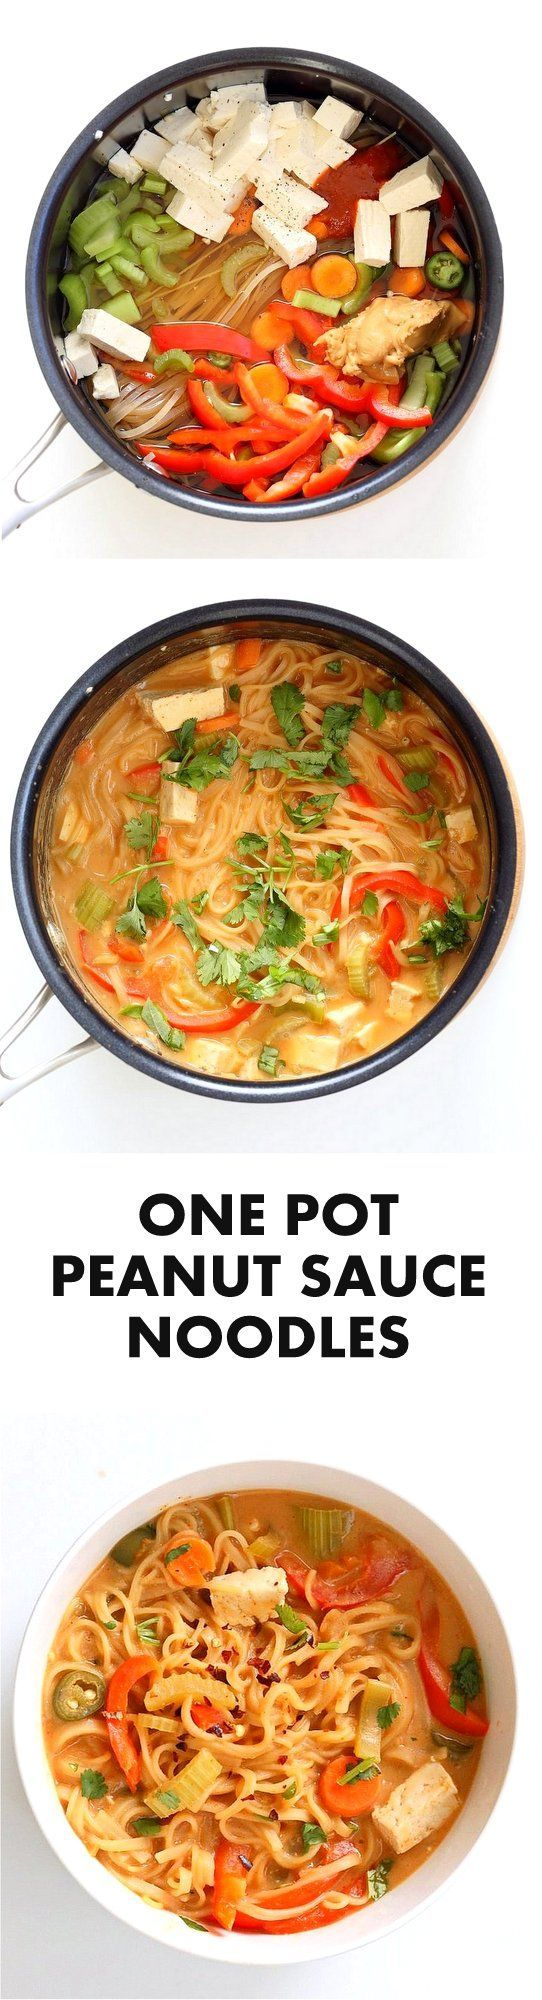 One Pot Peanut Sauce Noodles